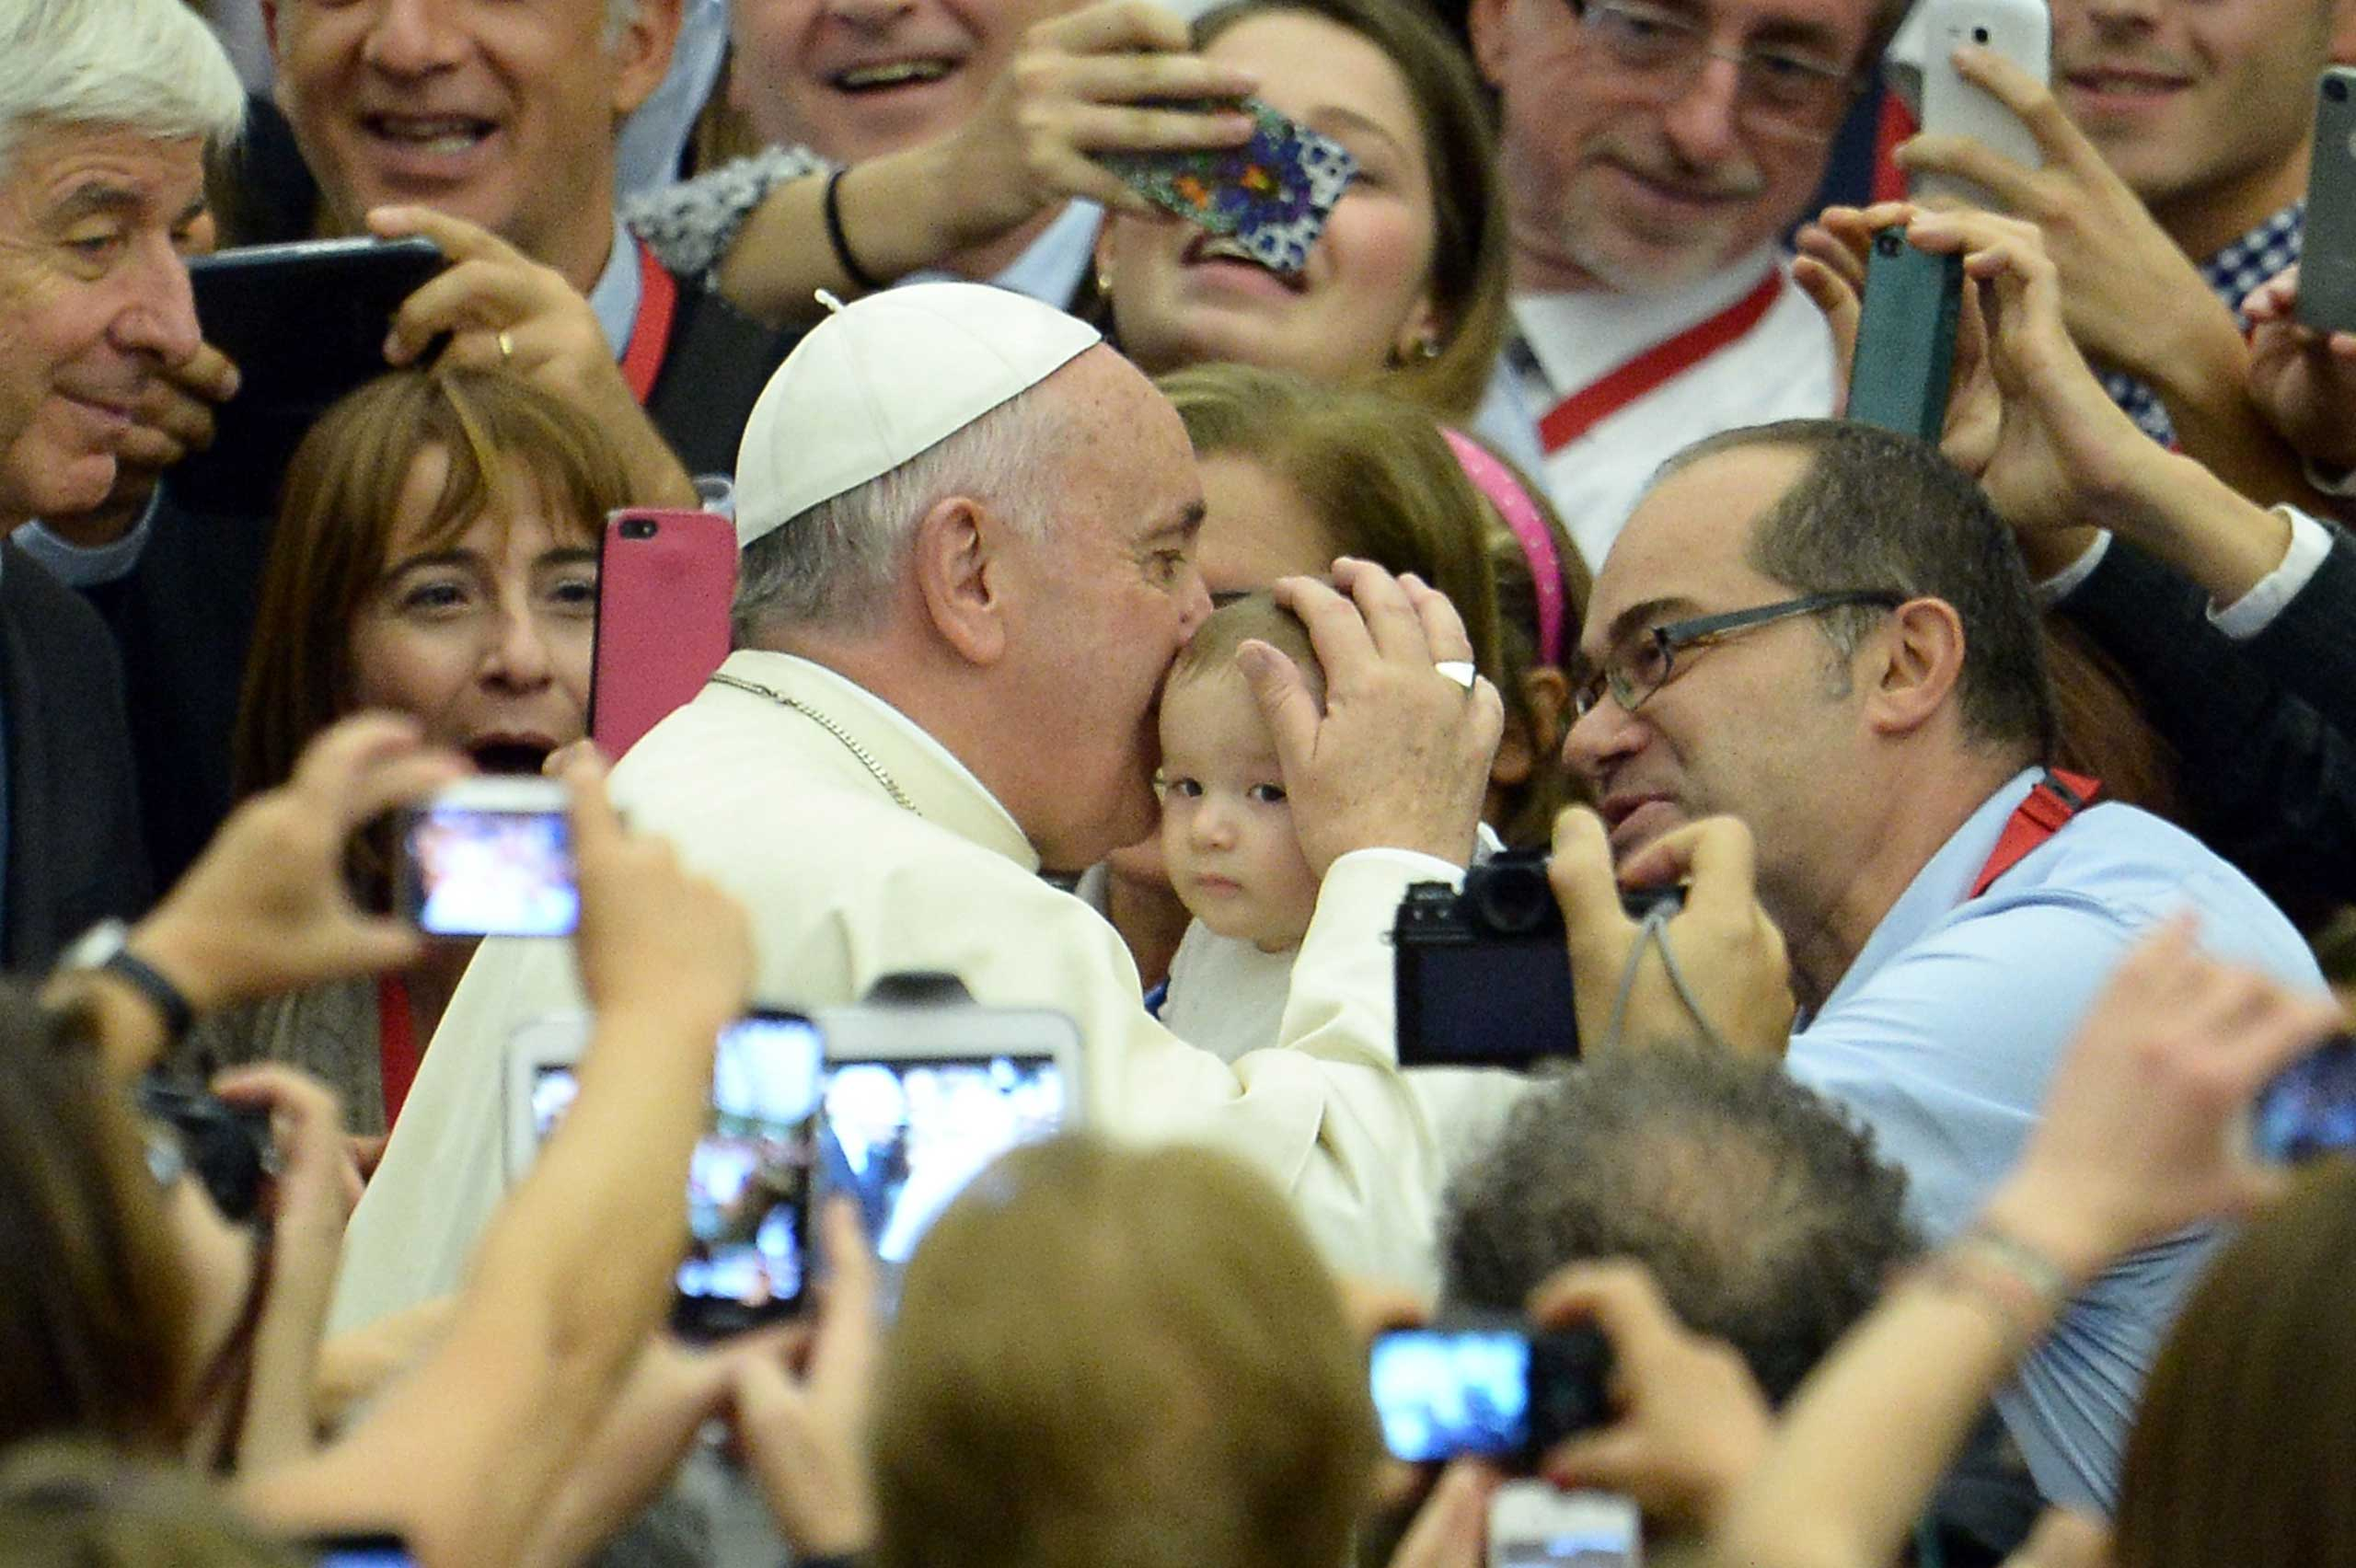 Pope Francis kisses a baby during an audience with members of the Association of Italian Catholic Doctors at Paul VI audience hall at the Vatican on Nov. 15, 2014.